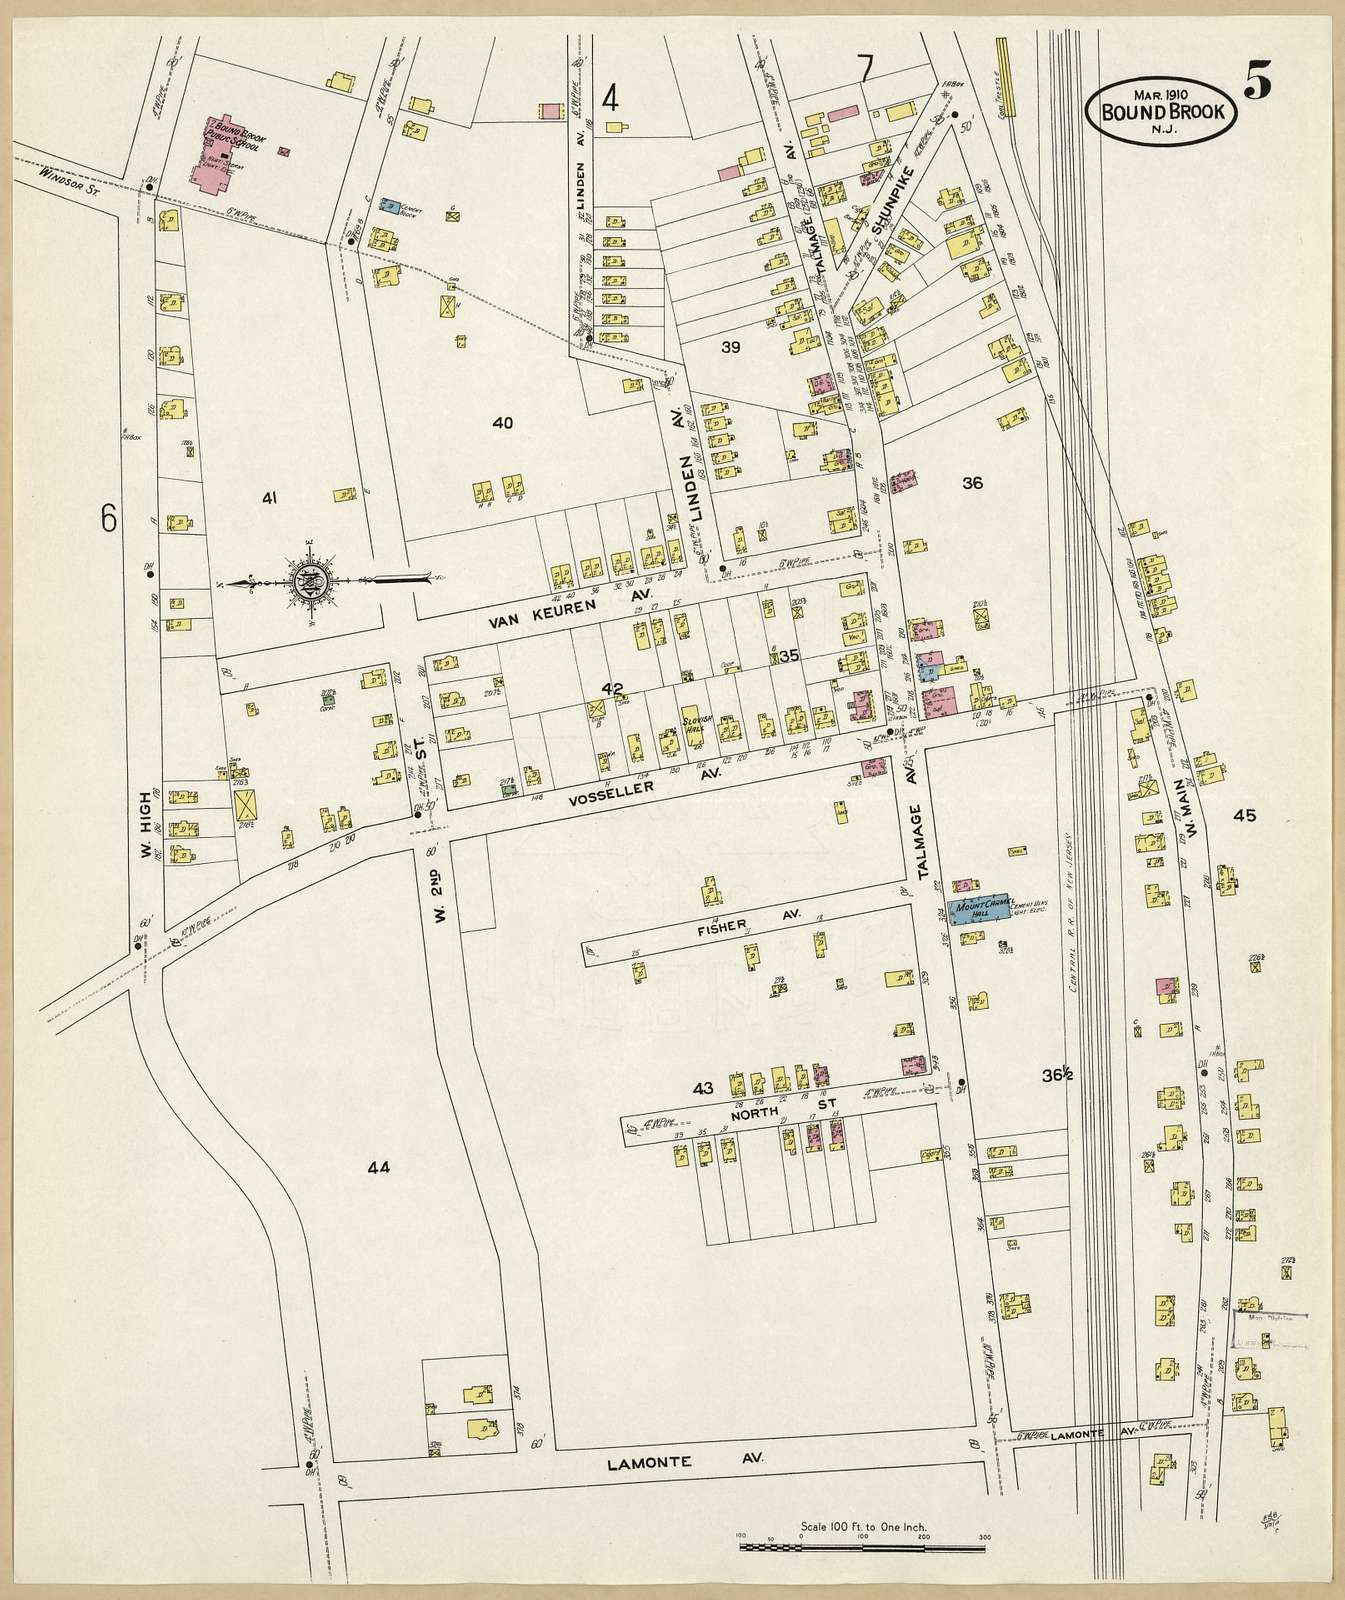 Sanborn Fire Insurance Map from Bound Brook, Somerset County, New Jersey.